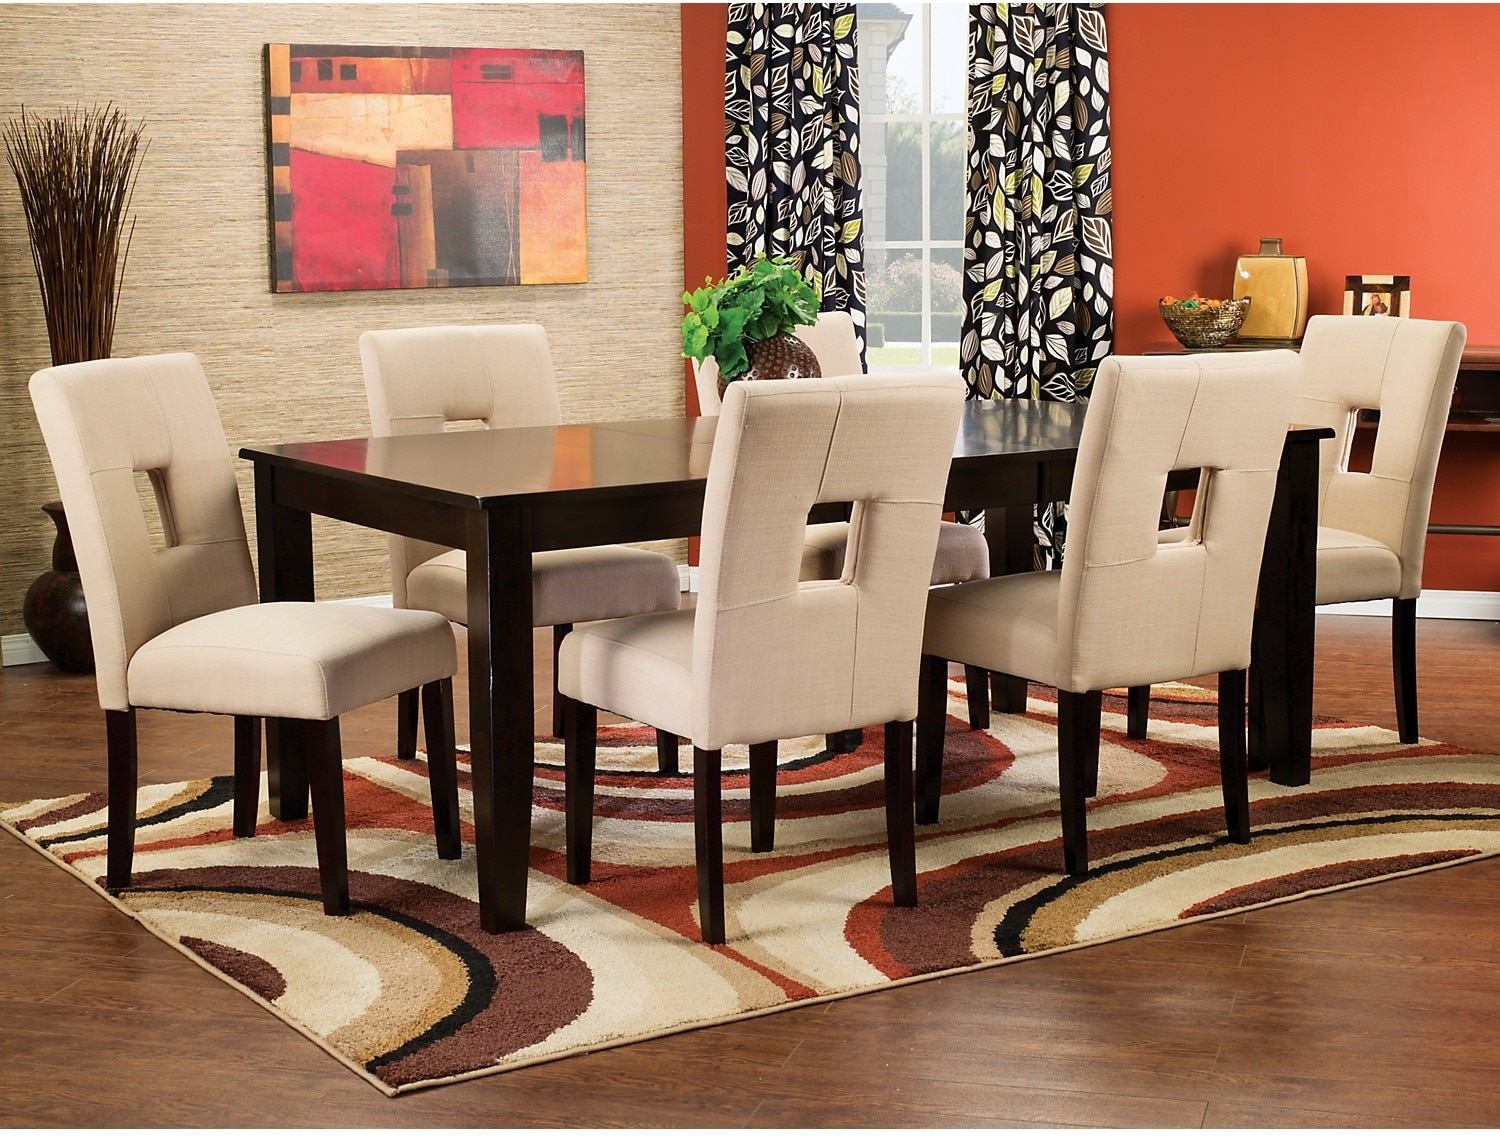 Dining Room Furniture - Dakota 7-Piece Dining Package with Beige Chairs